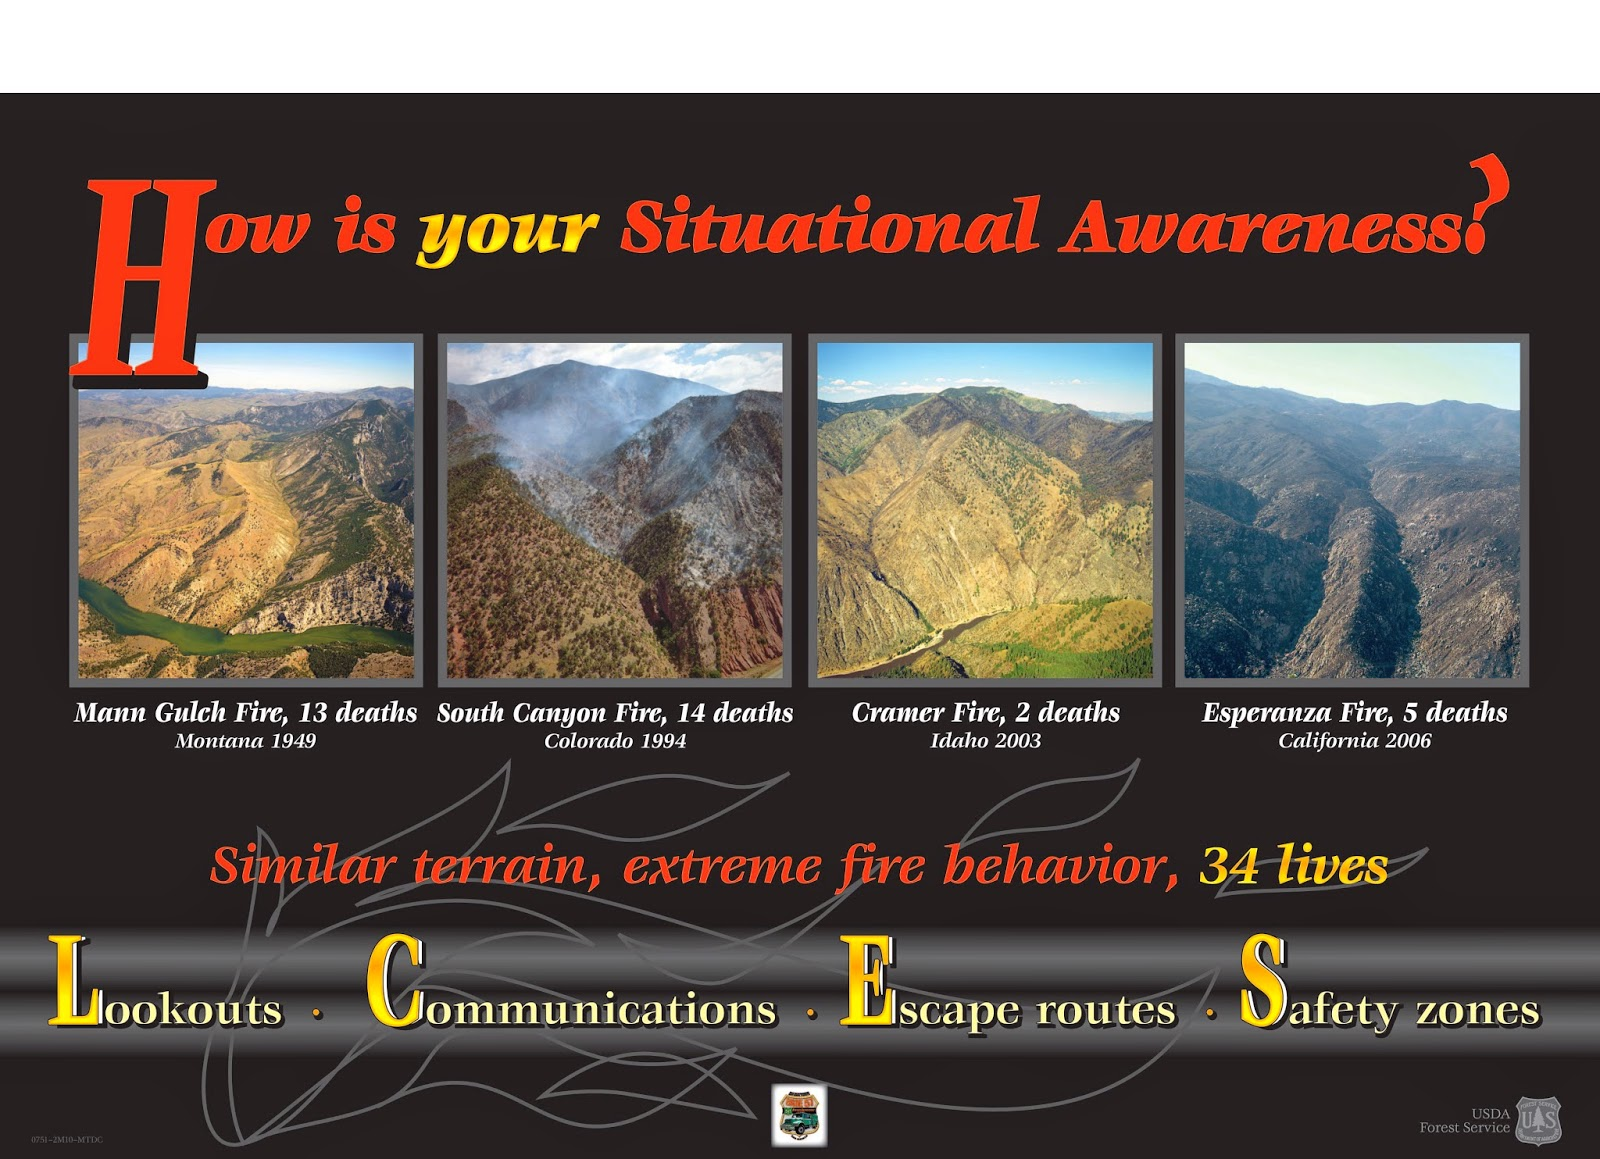 Situational awareness poster